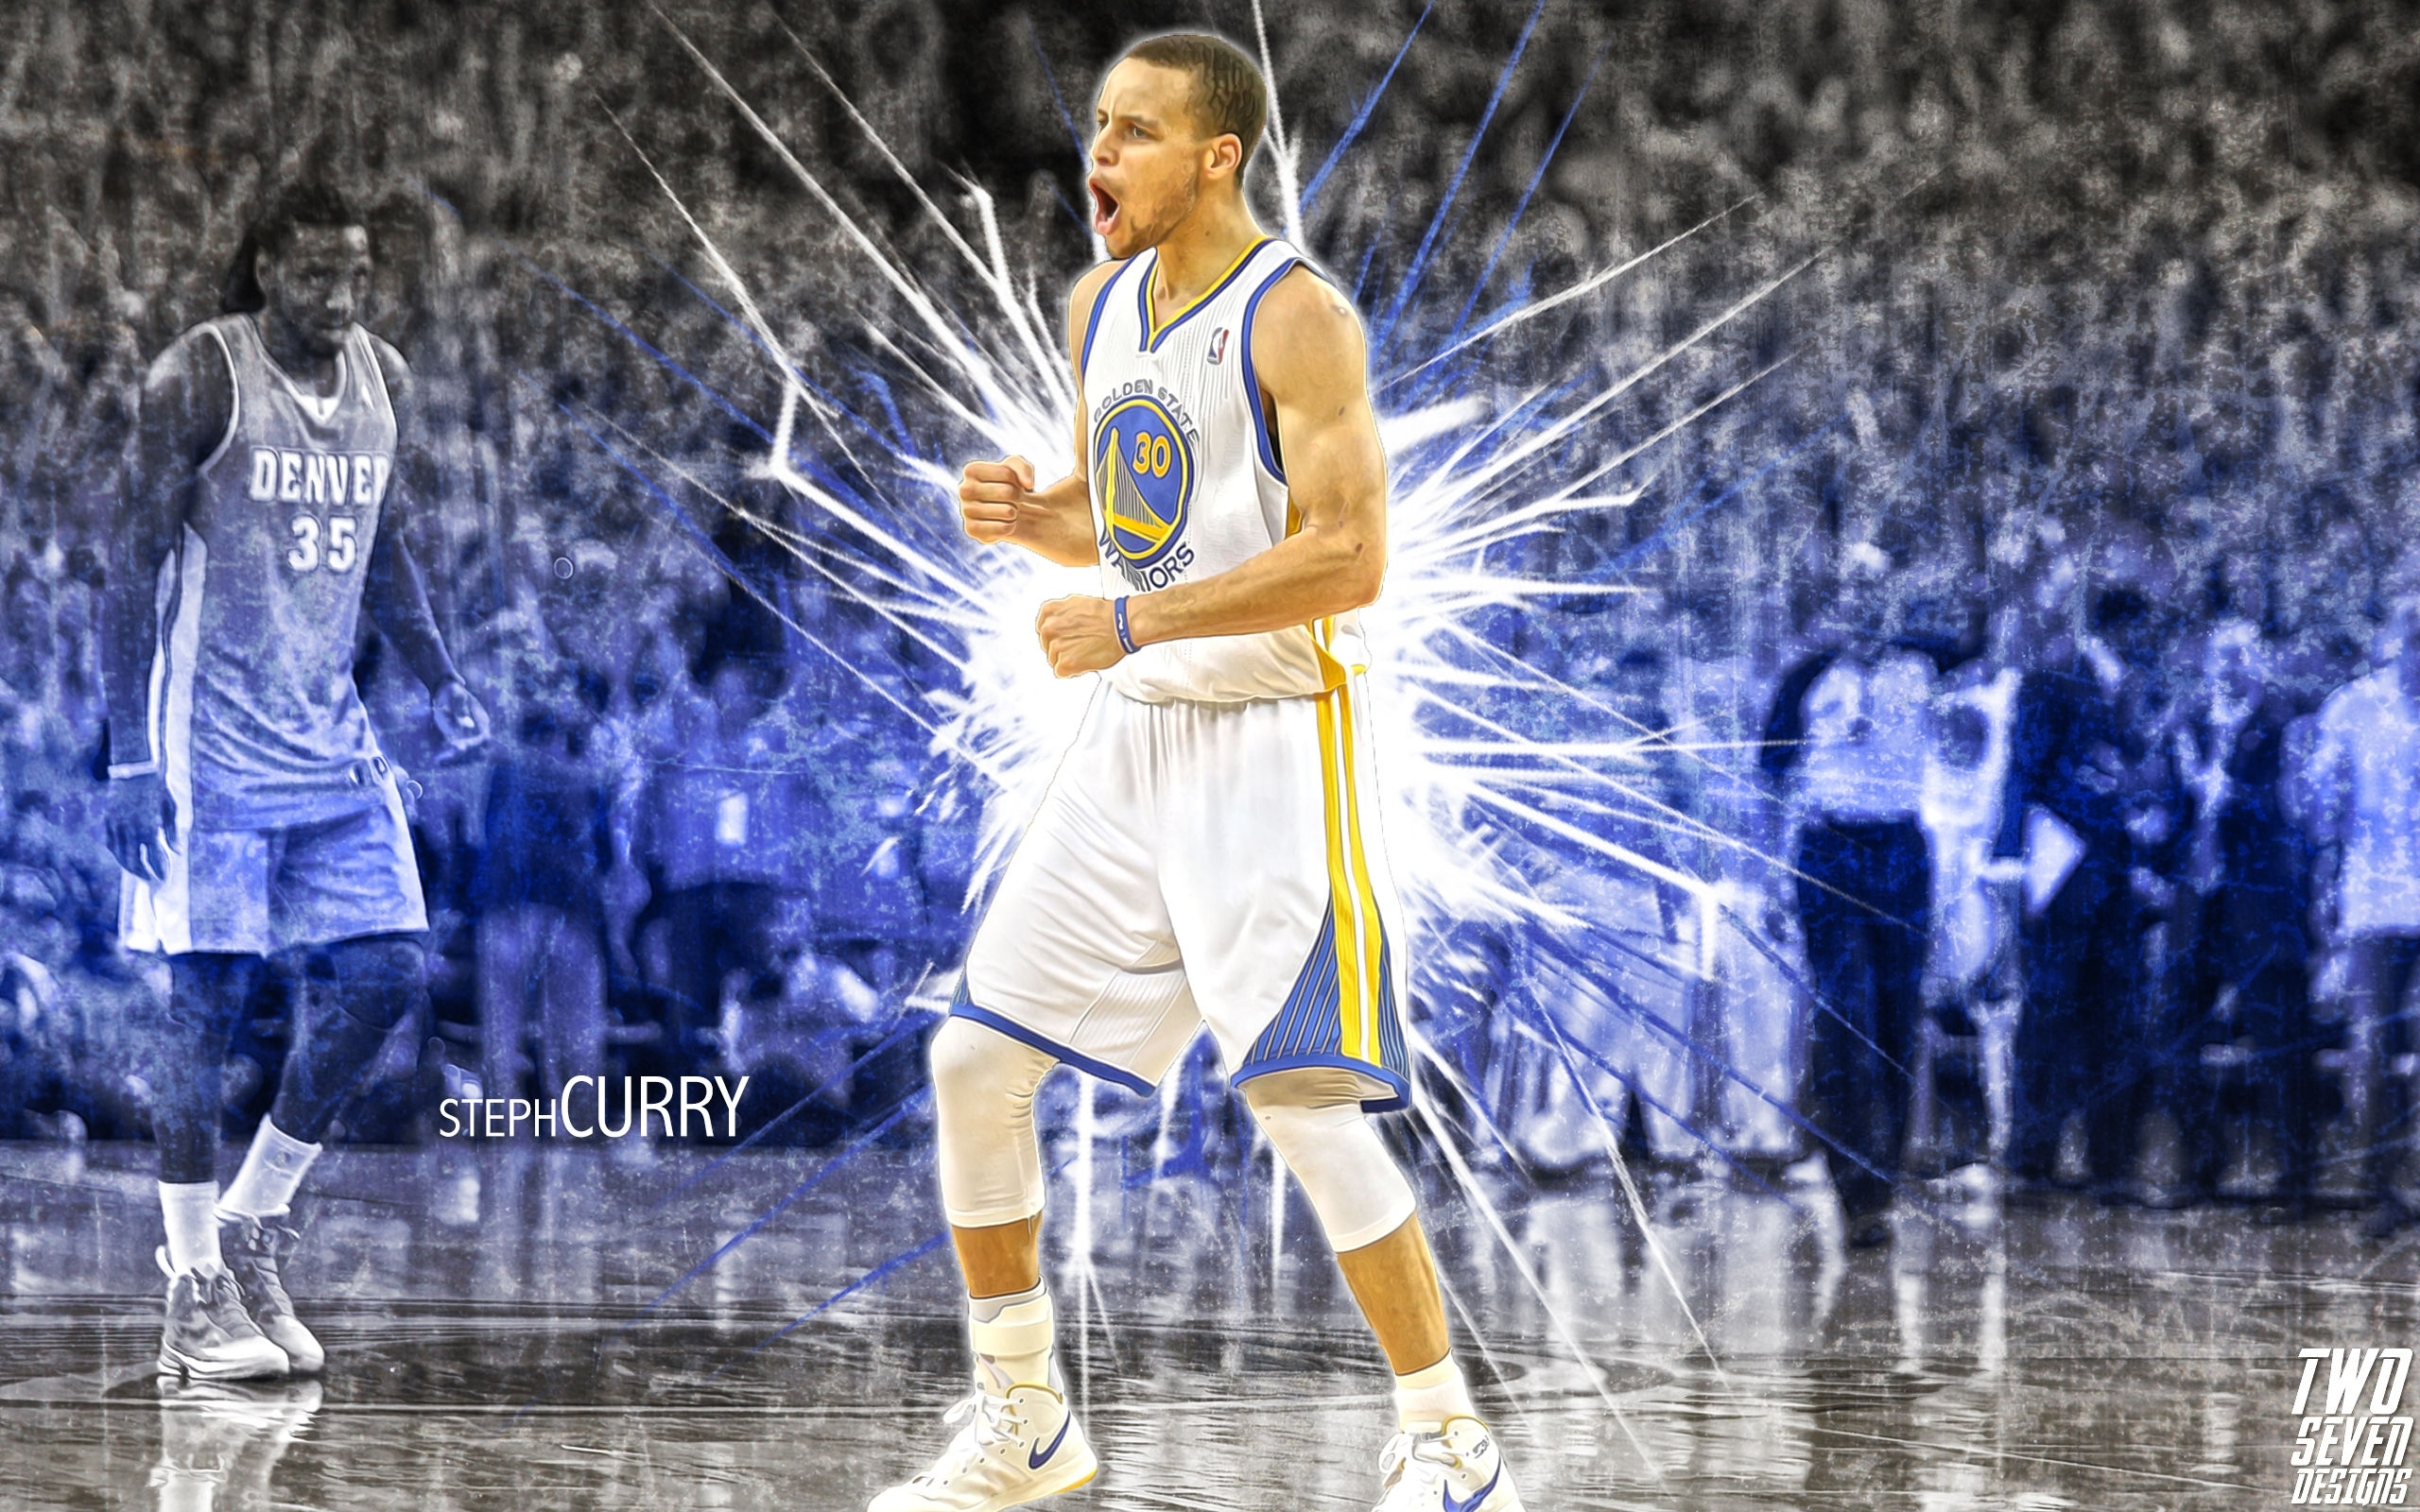 stephen curry full hd fond d'écran and arrière-plan | 2560x1600 | id